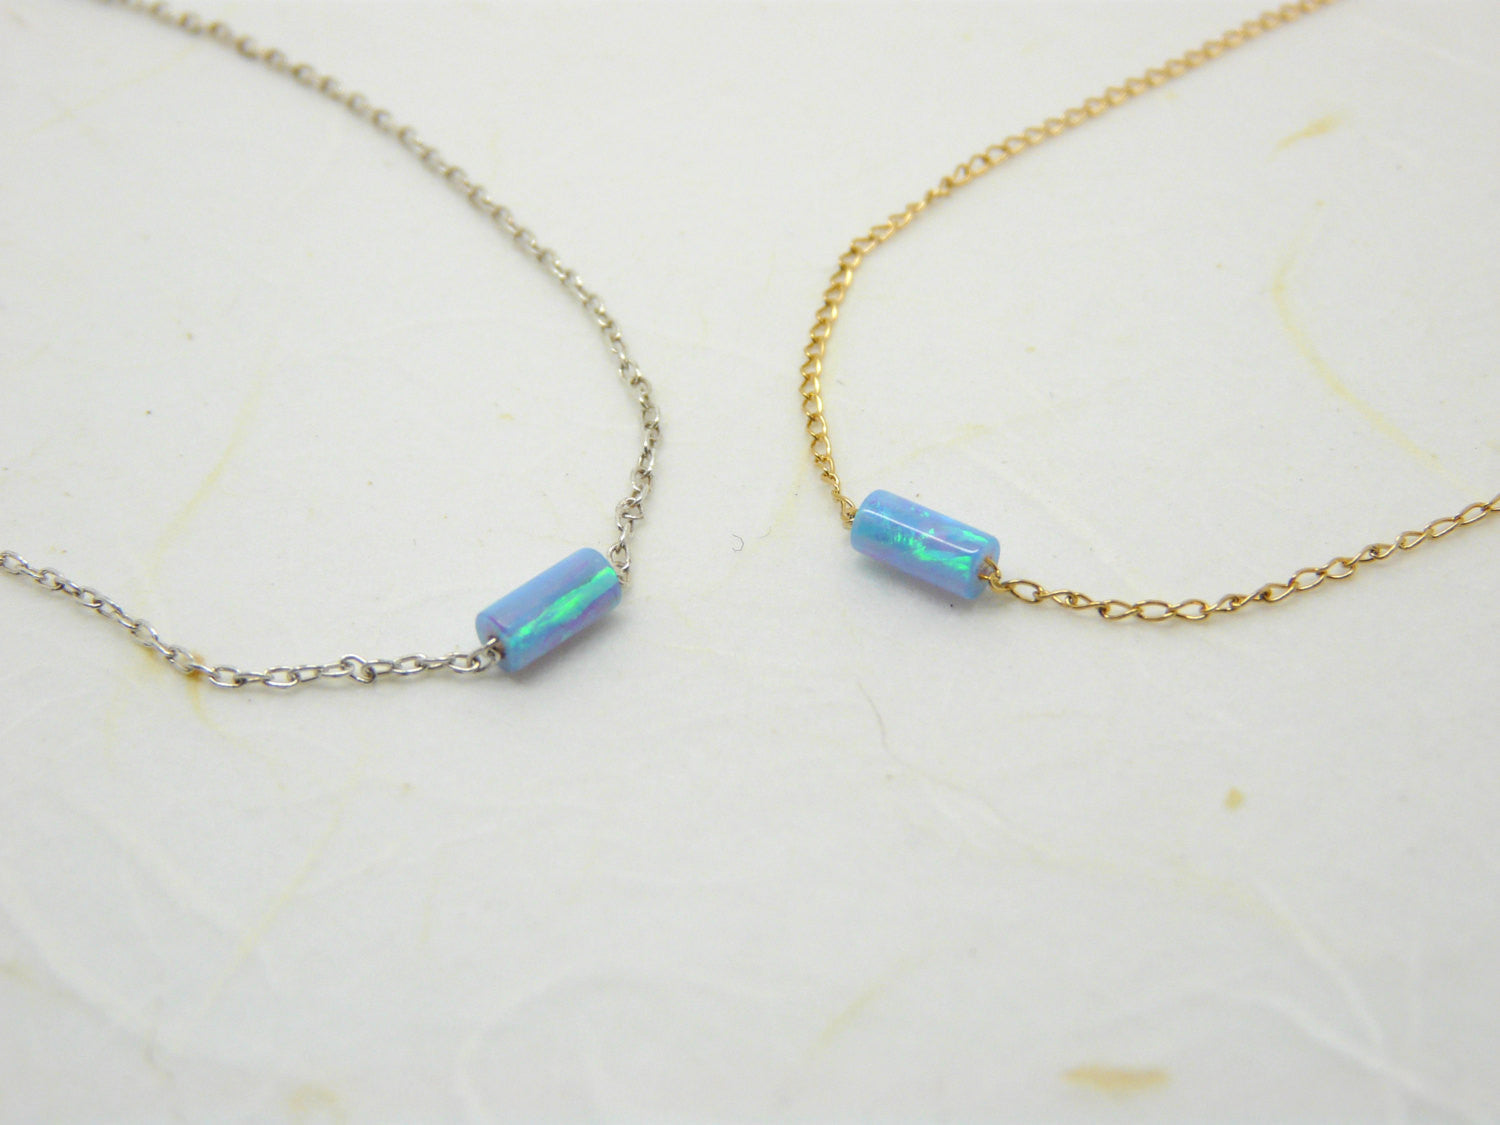 Tube opal necklace - OpaLandJewelry